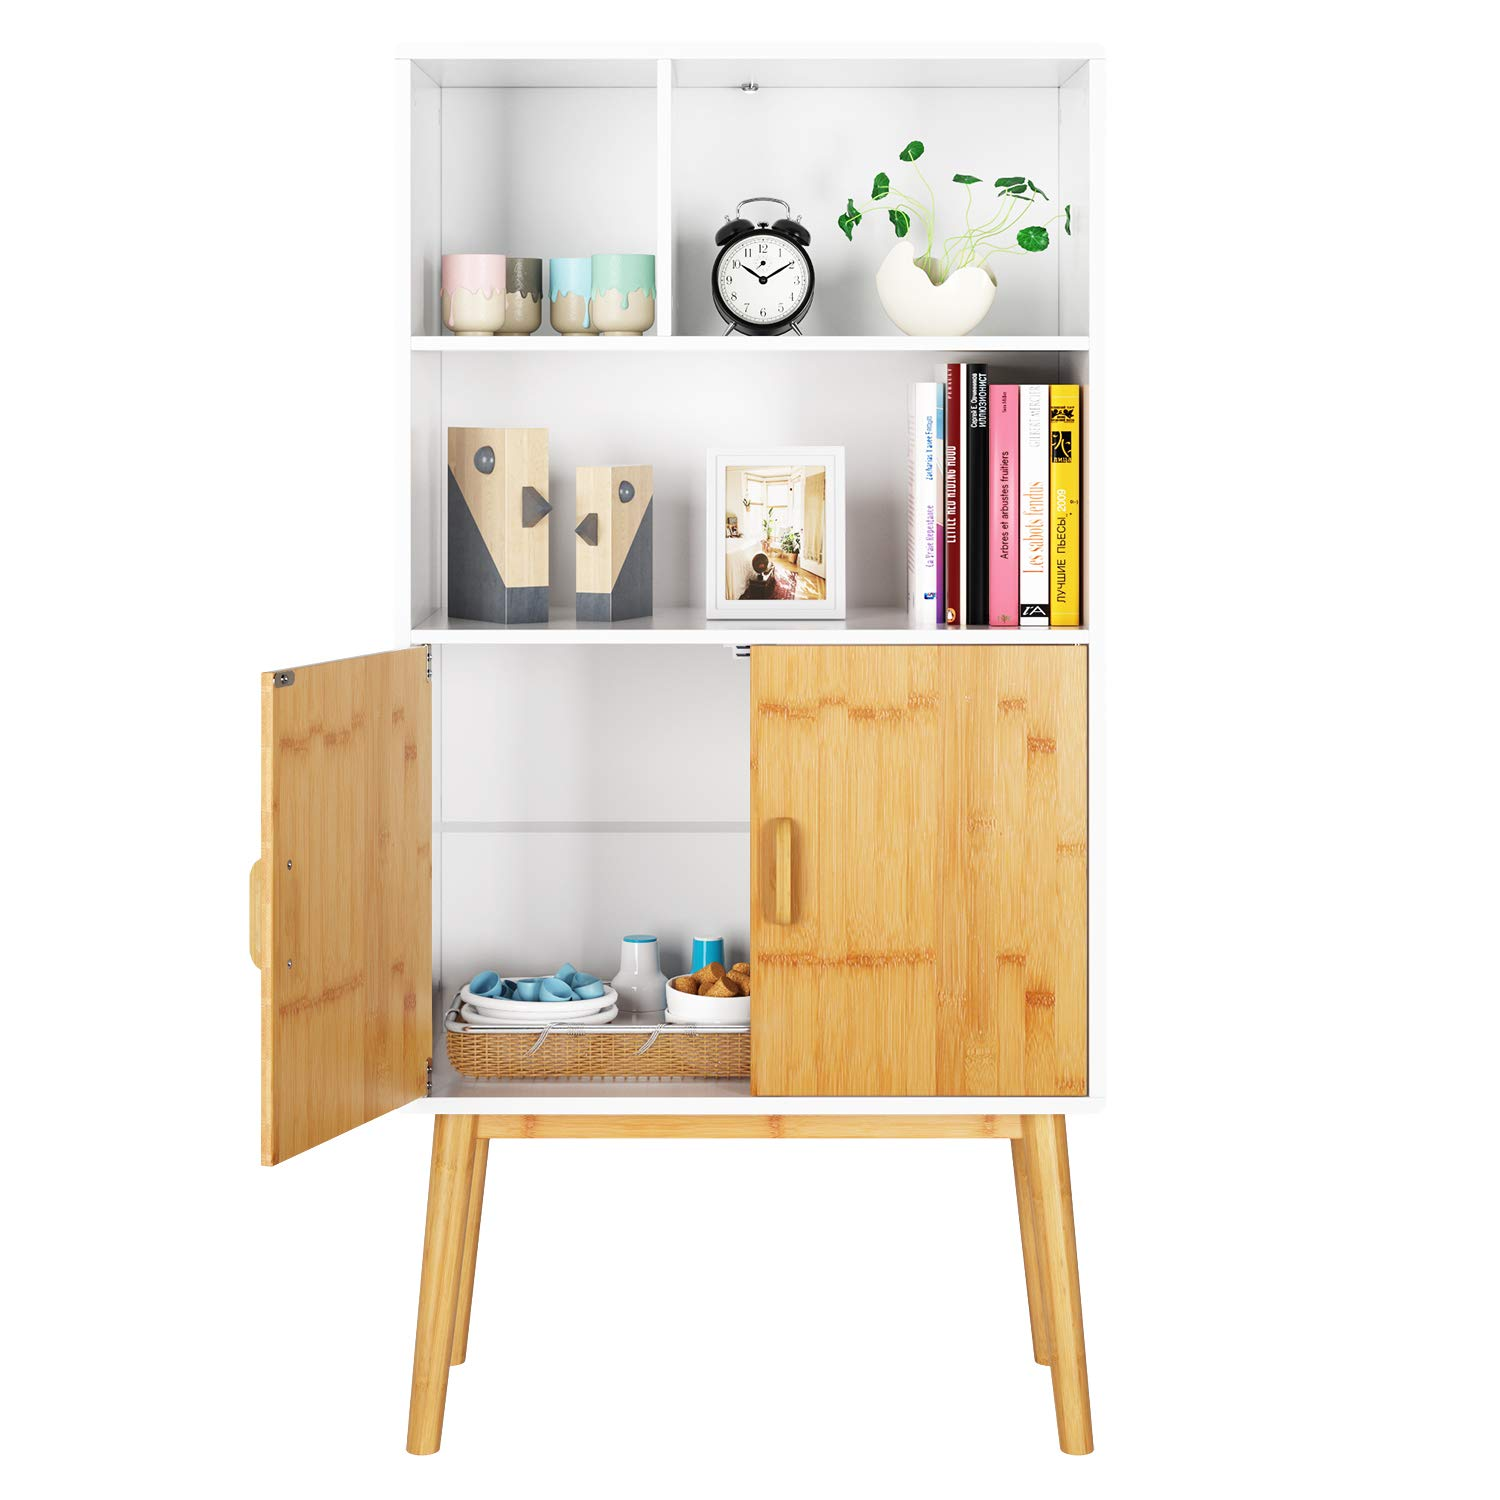 HOMECHO Storage Cabinet Sideboard Bookcase Shelf Floor Cabinets with Shelves 2 Doors Free Standing Cupboard for Home Office Study Bedroom, with Legs, White, HMC-MD-009 by HOMECHO